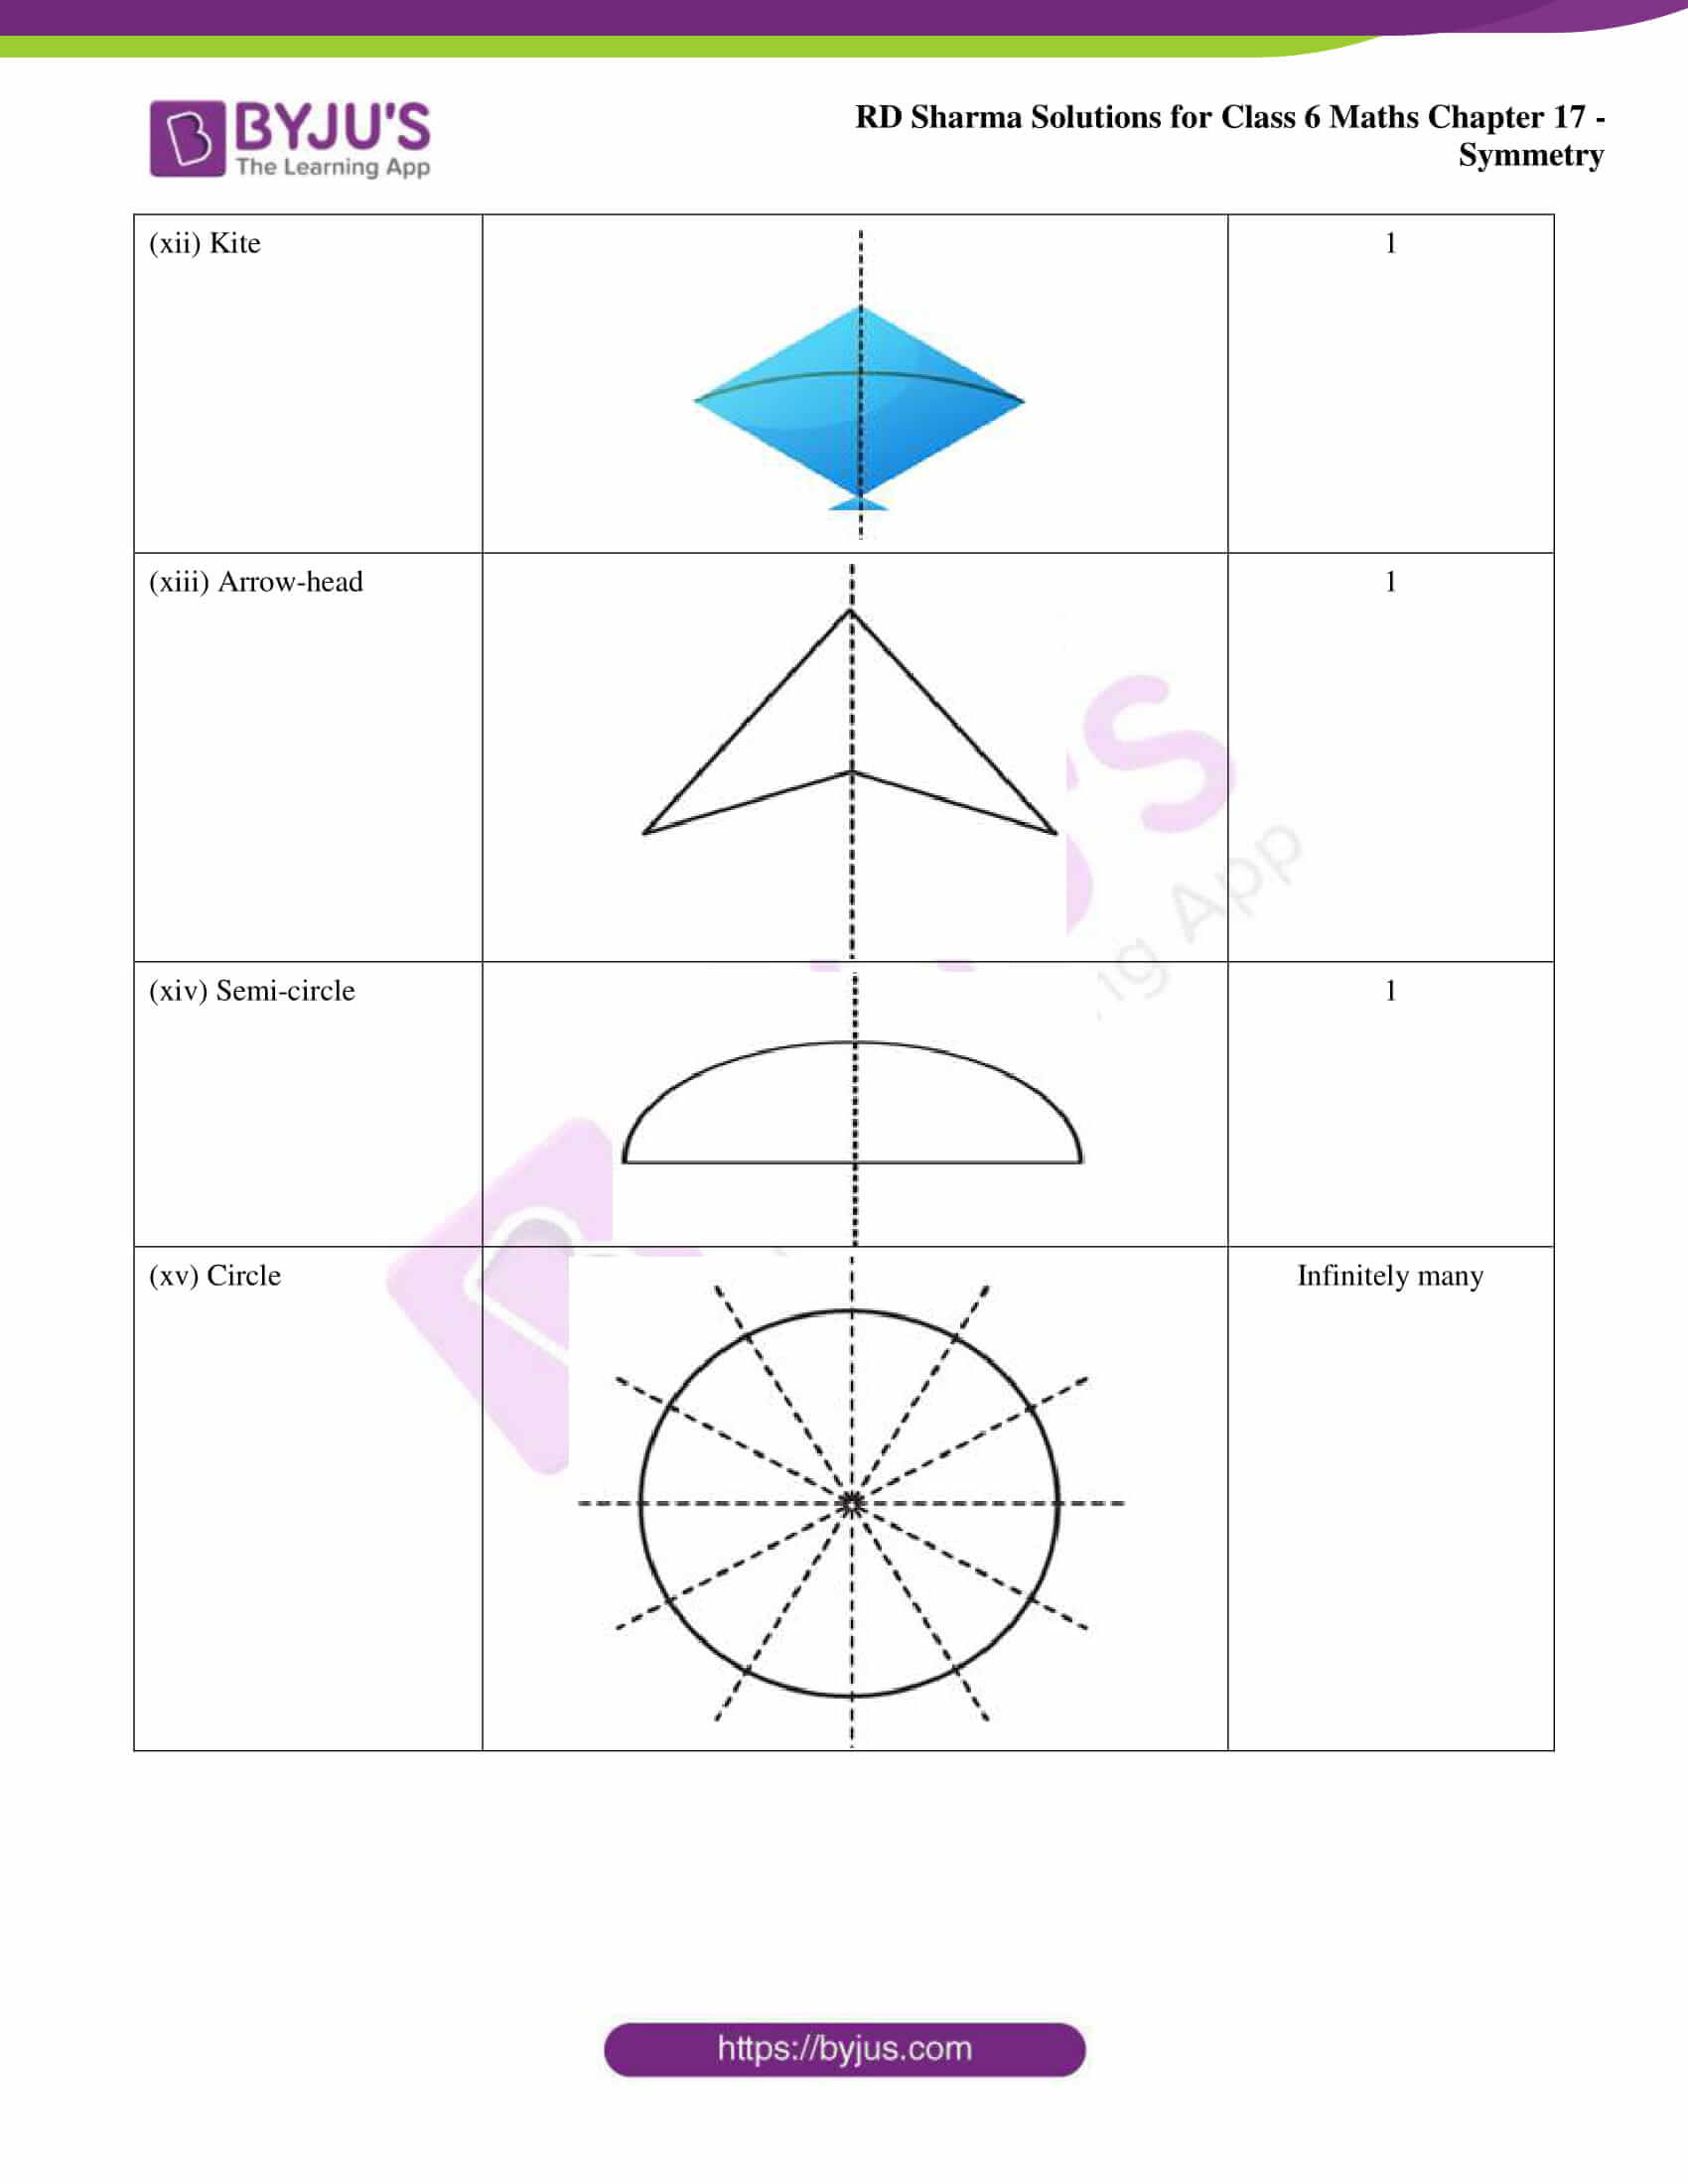 rd sharma solutions nov2020 class 6 maths chapter 17 exercise 3 04